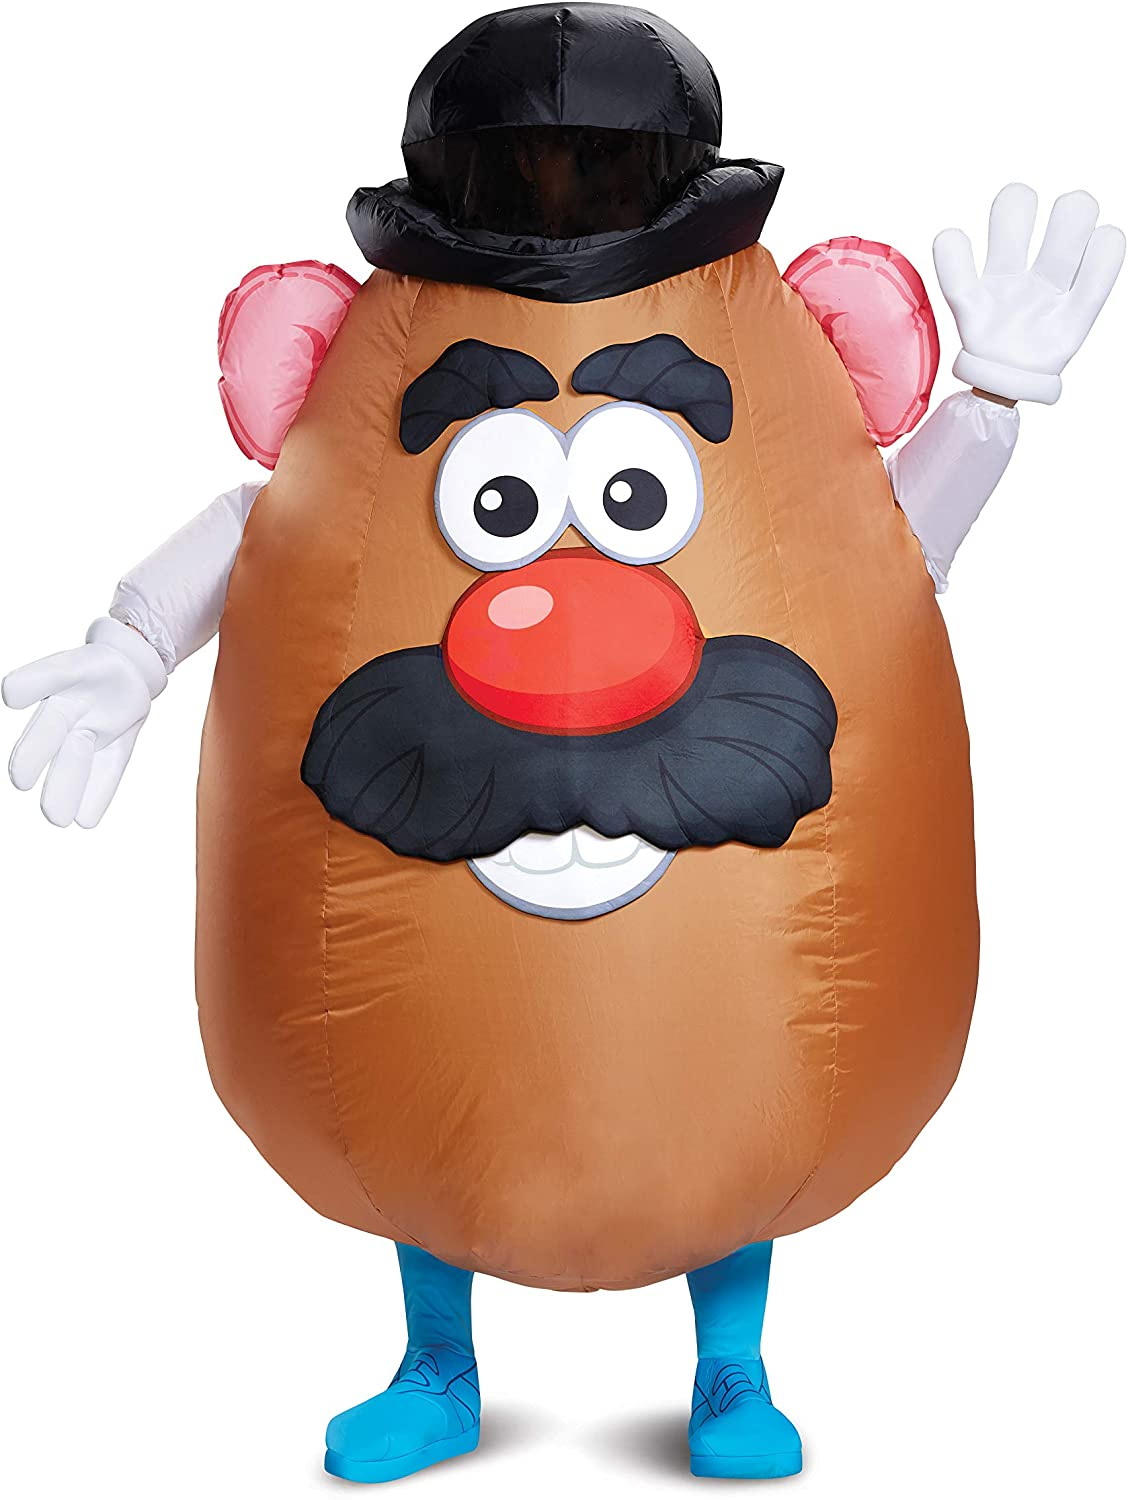 Men's Mr. Potato Head Inflatable Costume